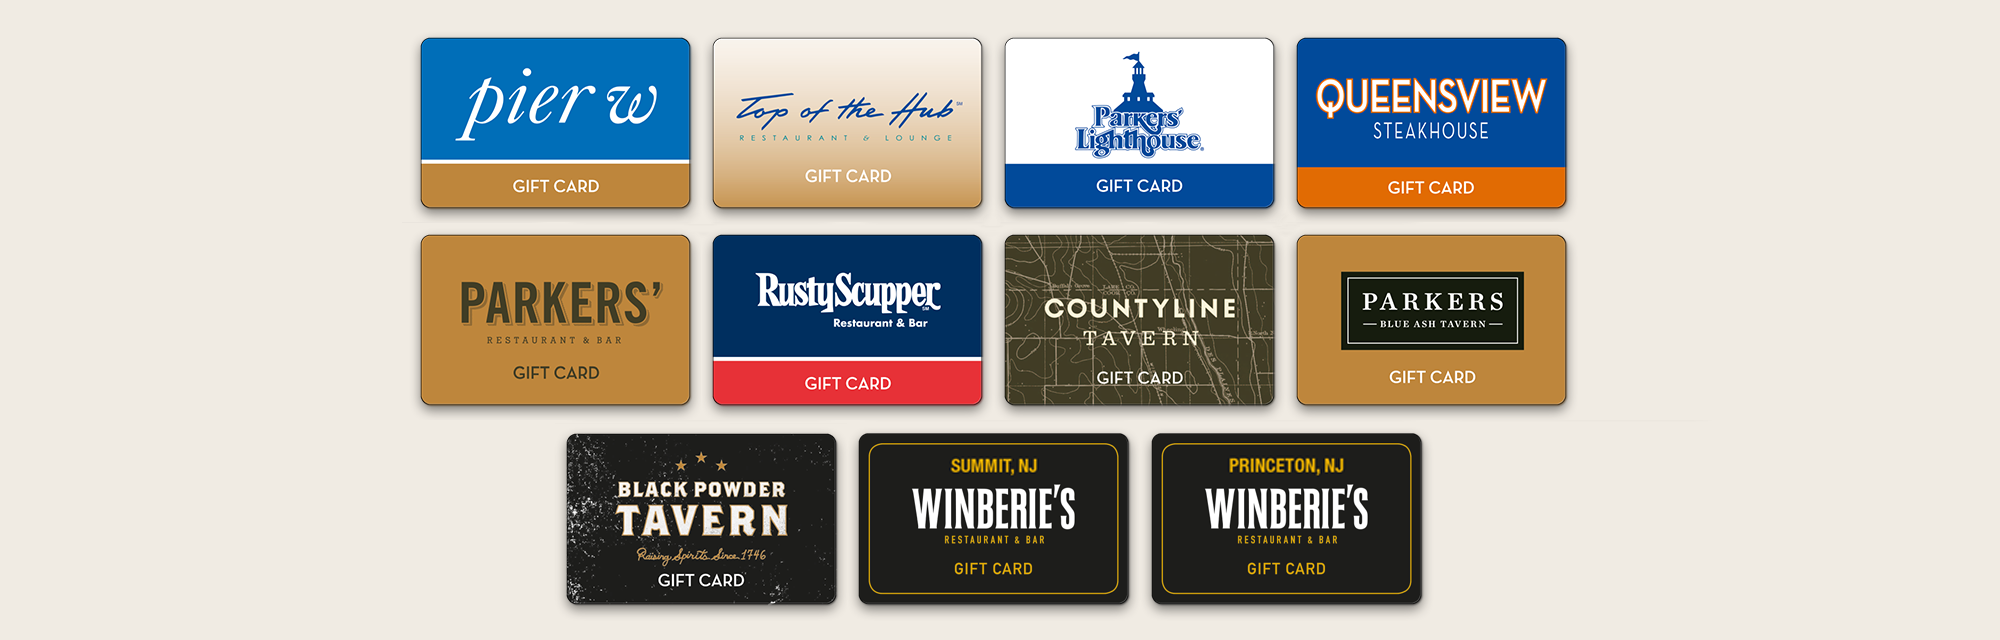 Purchase Giftcards for Pier W, Top of the Hub, Parker's, Rusty Scupper, Black Powder Tavern, & Winberries Restaurants